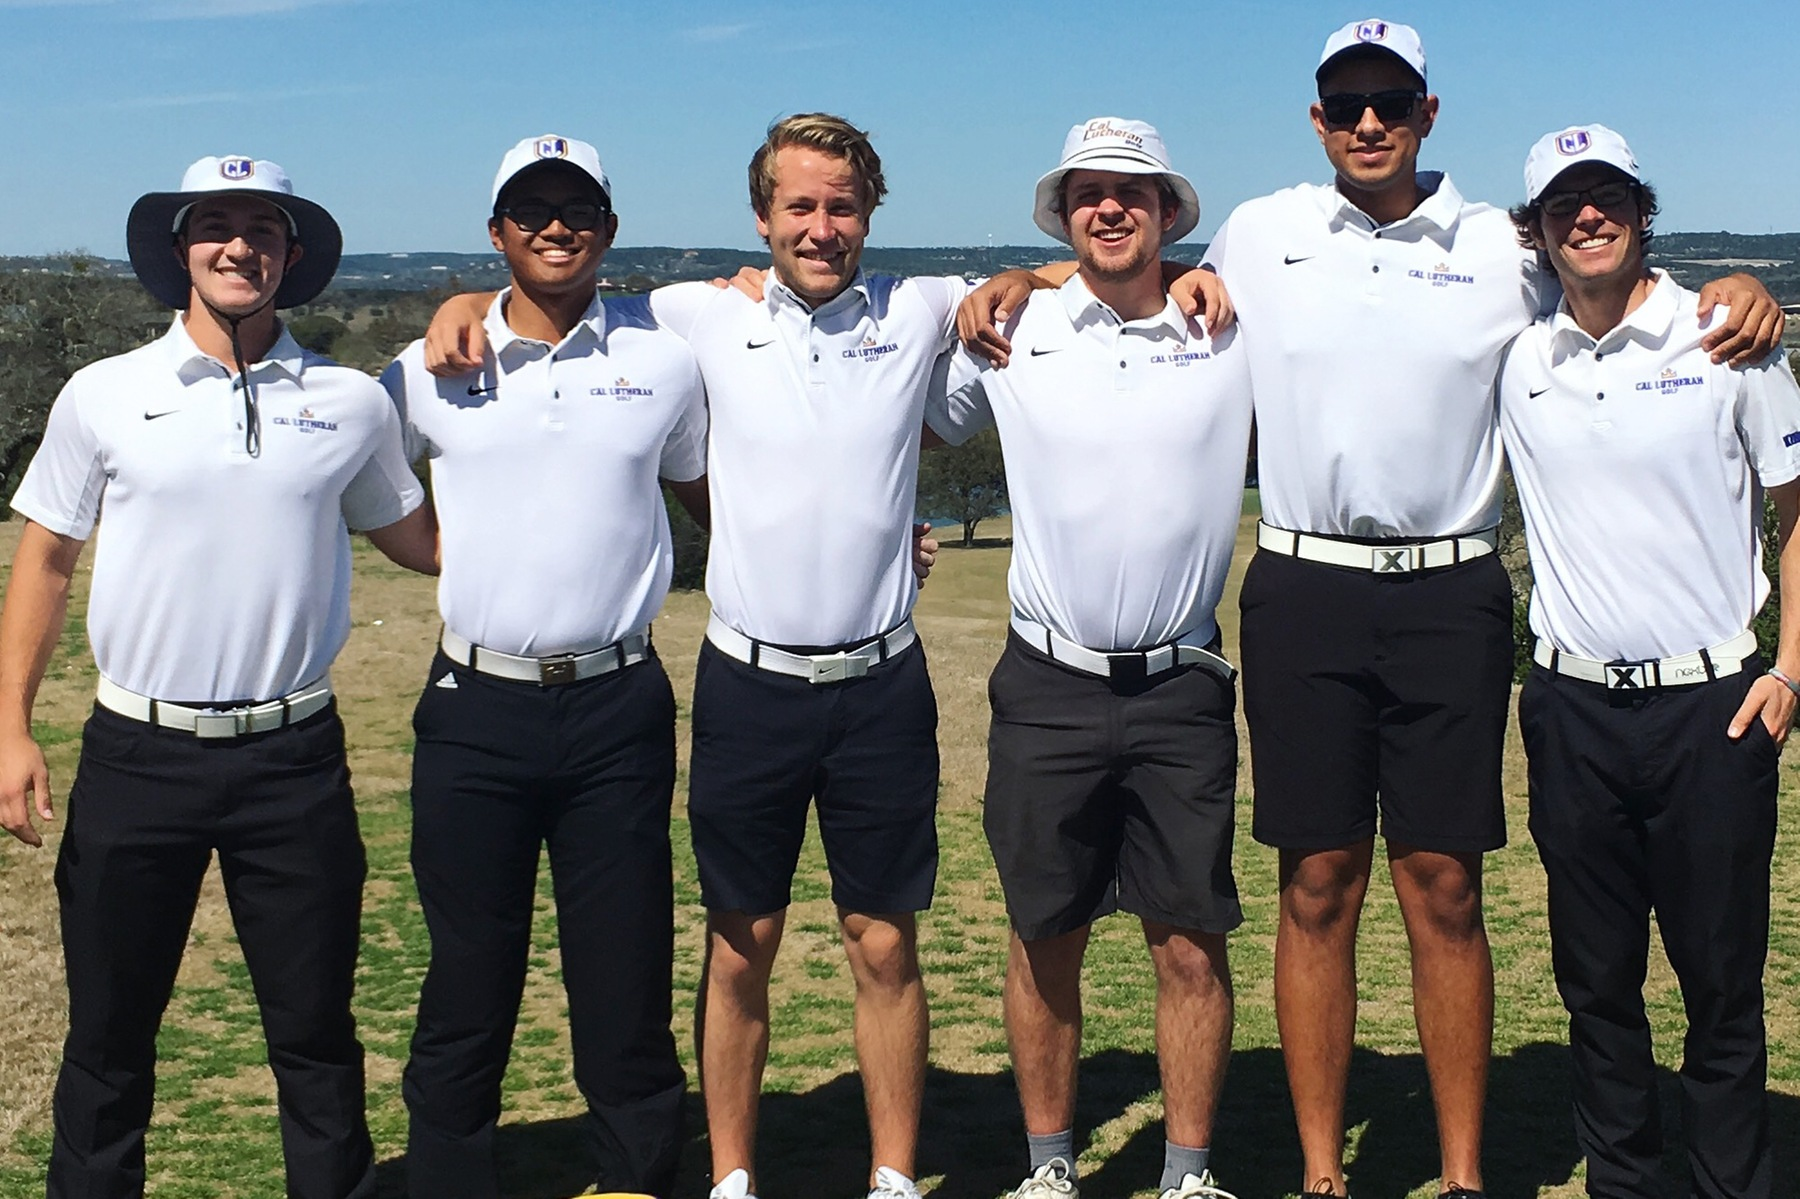 Kyaw Ties for Second, Kingsmen Fourth in Texas